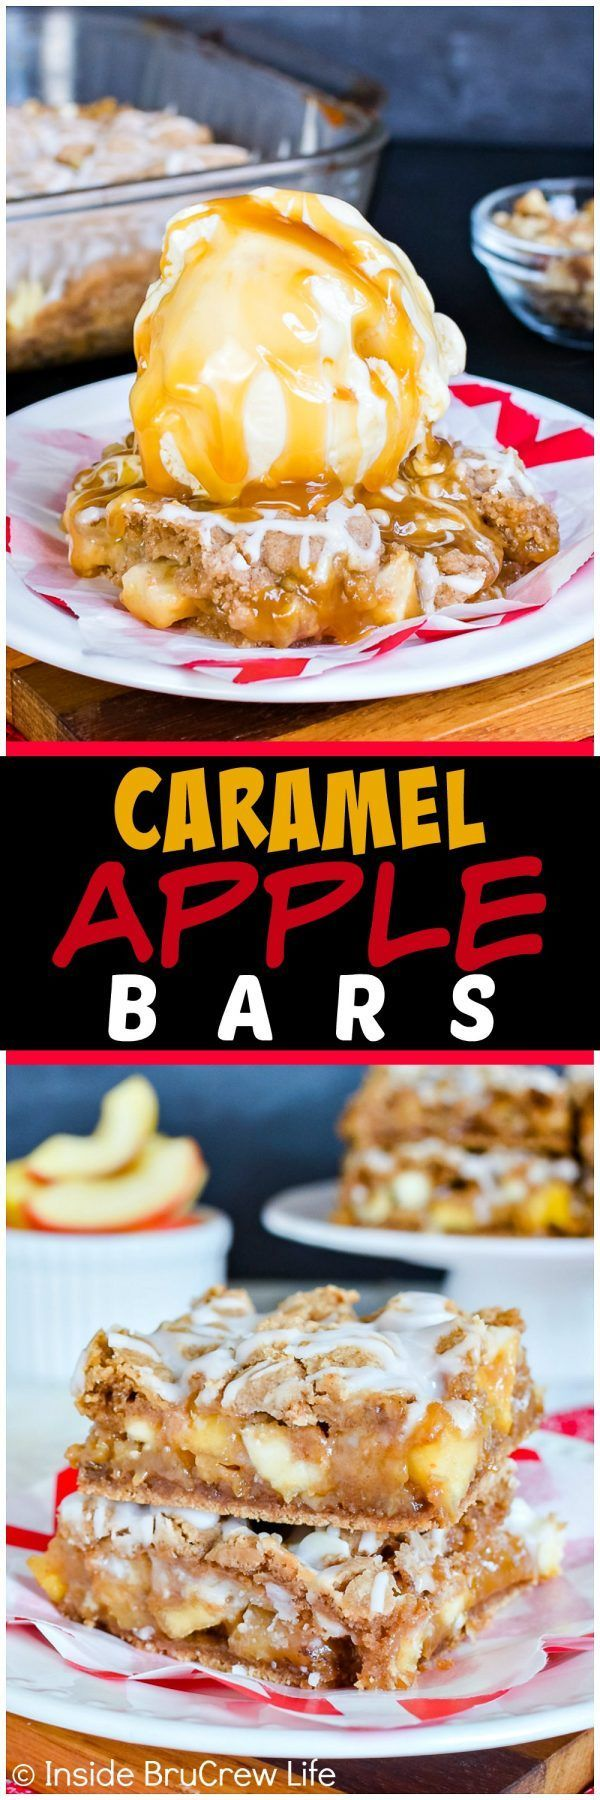 Caramel Apple Bars - this gooey bar recipe is loaded with apples, walnuts, and caramel. Add vanilla ice cream to make an awesome fall dessert! #apple #fall #dessert